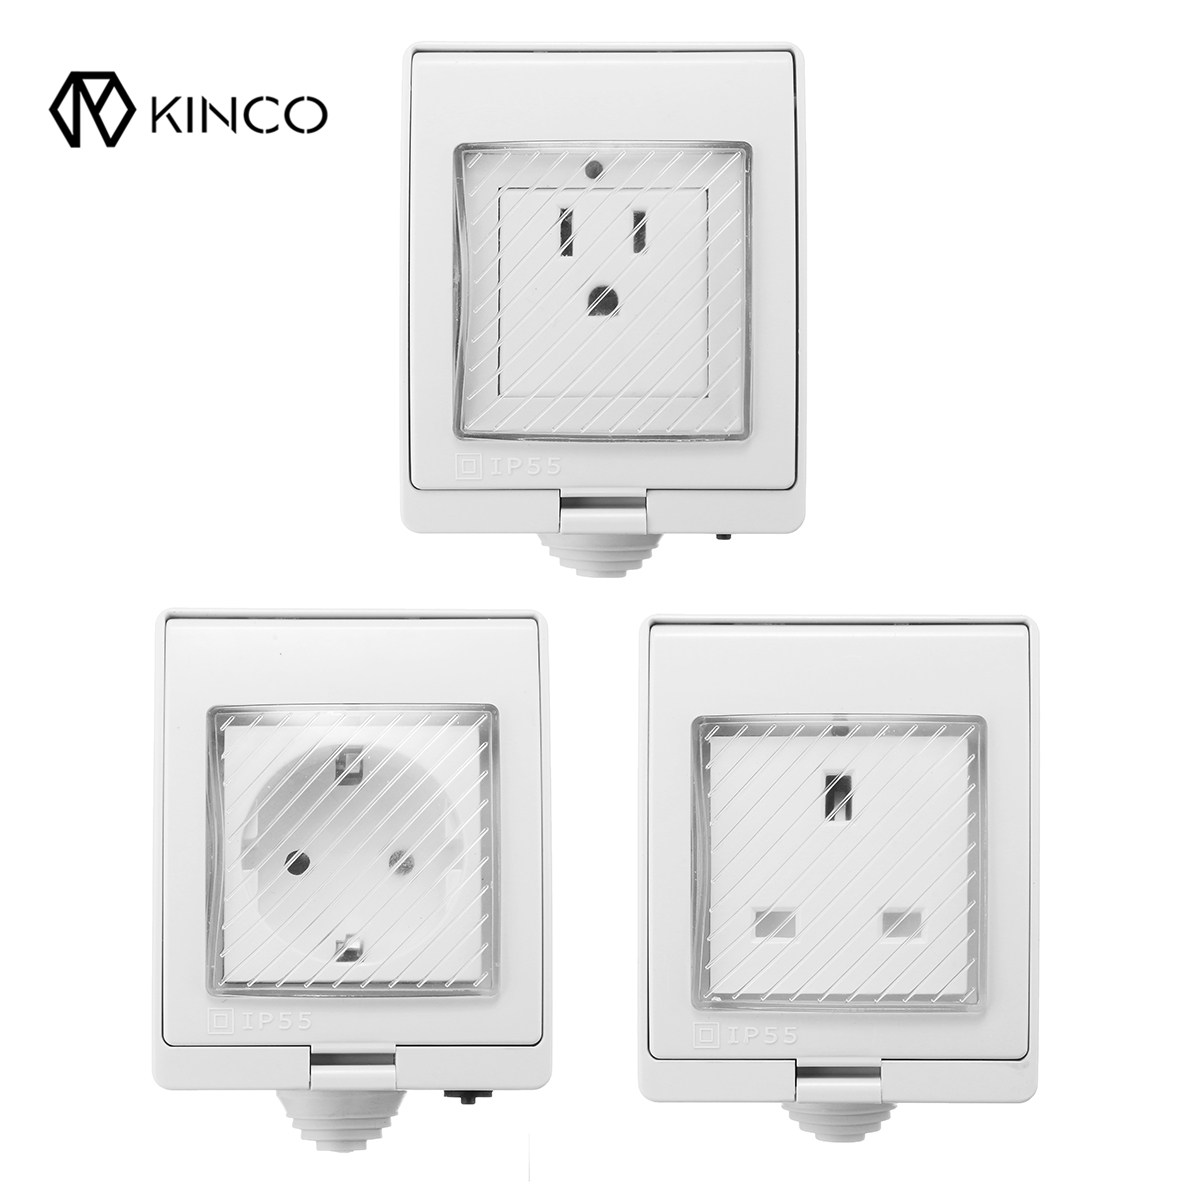 KINCO Waterproof Smart WiFi Power Socket Outlet Work For Alexa Google Home Remote Control Timer Switch 10A Outdoor neo coolcam wifi smart remote control power socket outlet timer support google home mini ifttt alexa for smart home automation